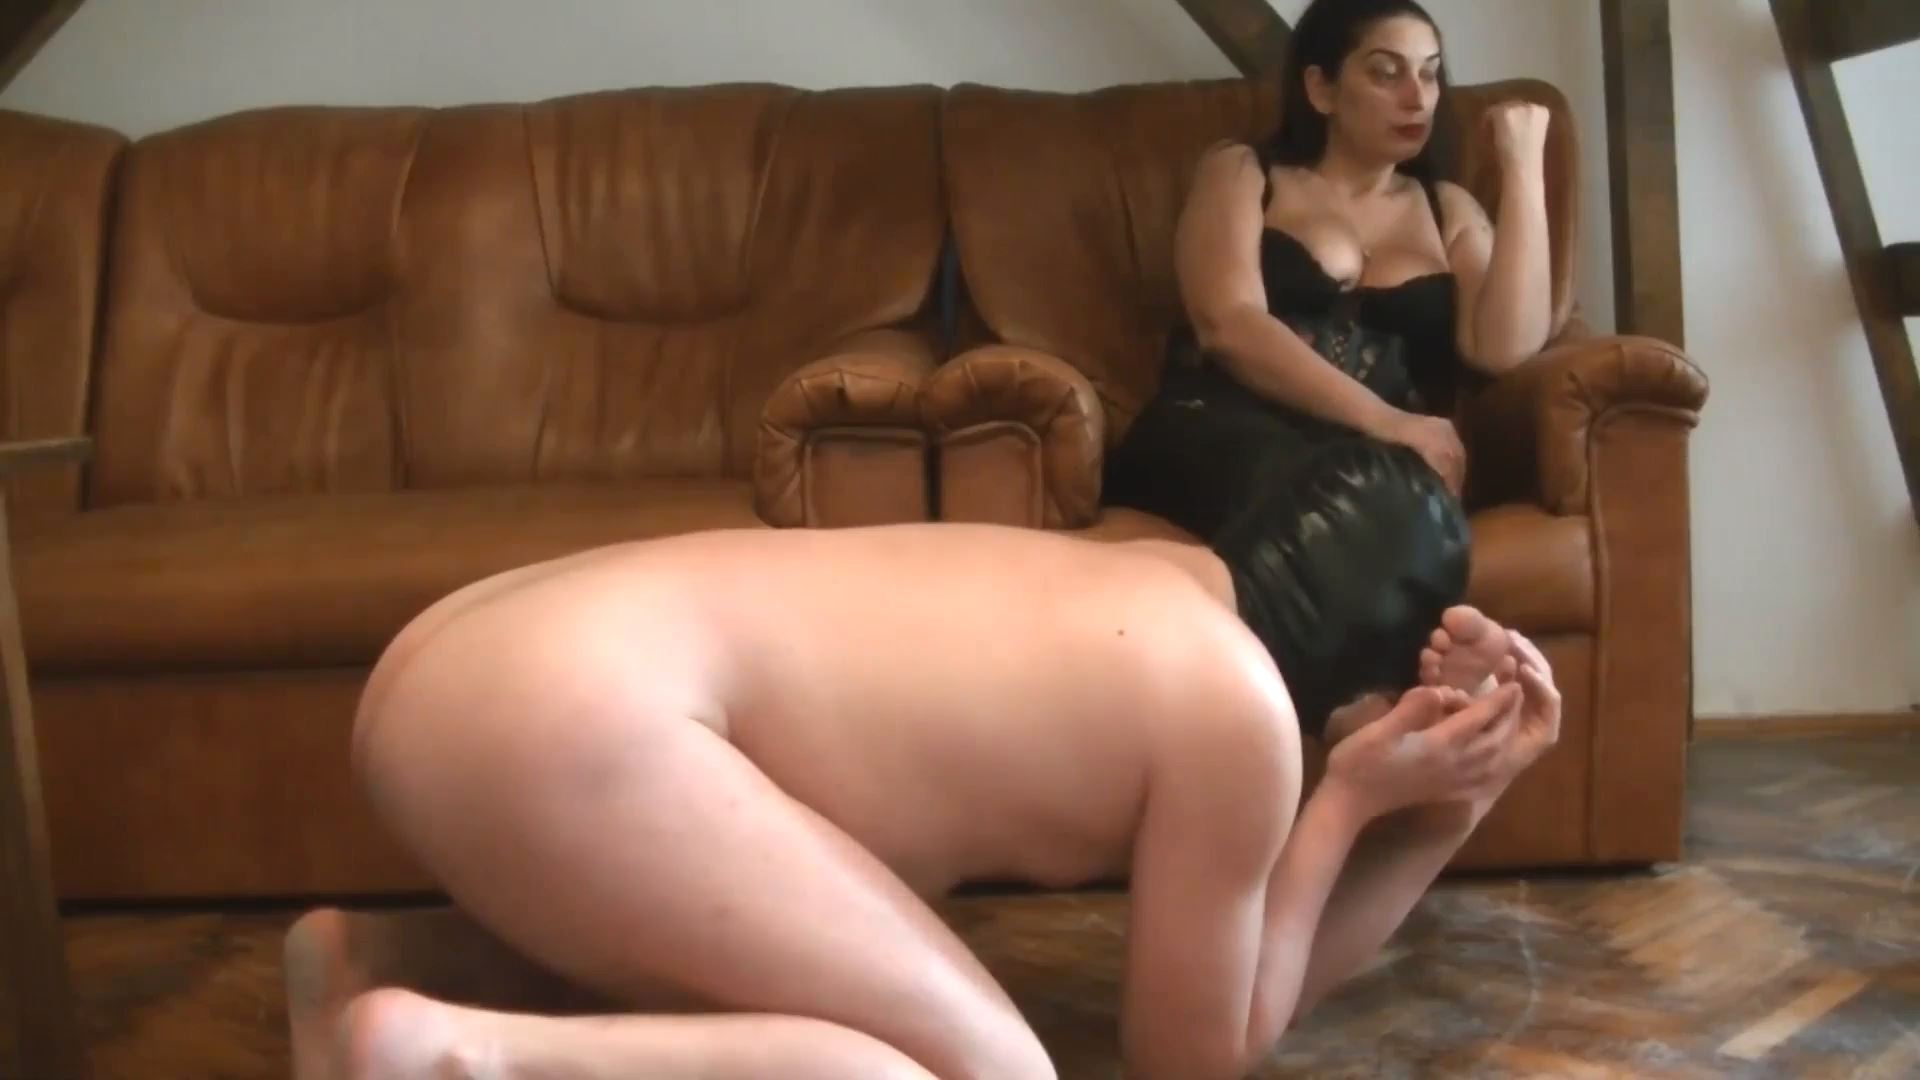 Mistress Roberta put the chastity again for 6 months - BIZARRE GODDESSES - FULL HD/1080p/MP4